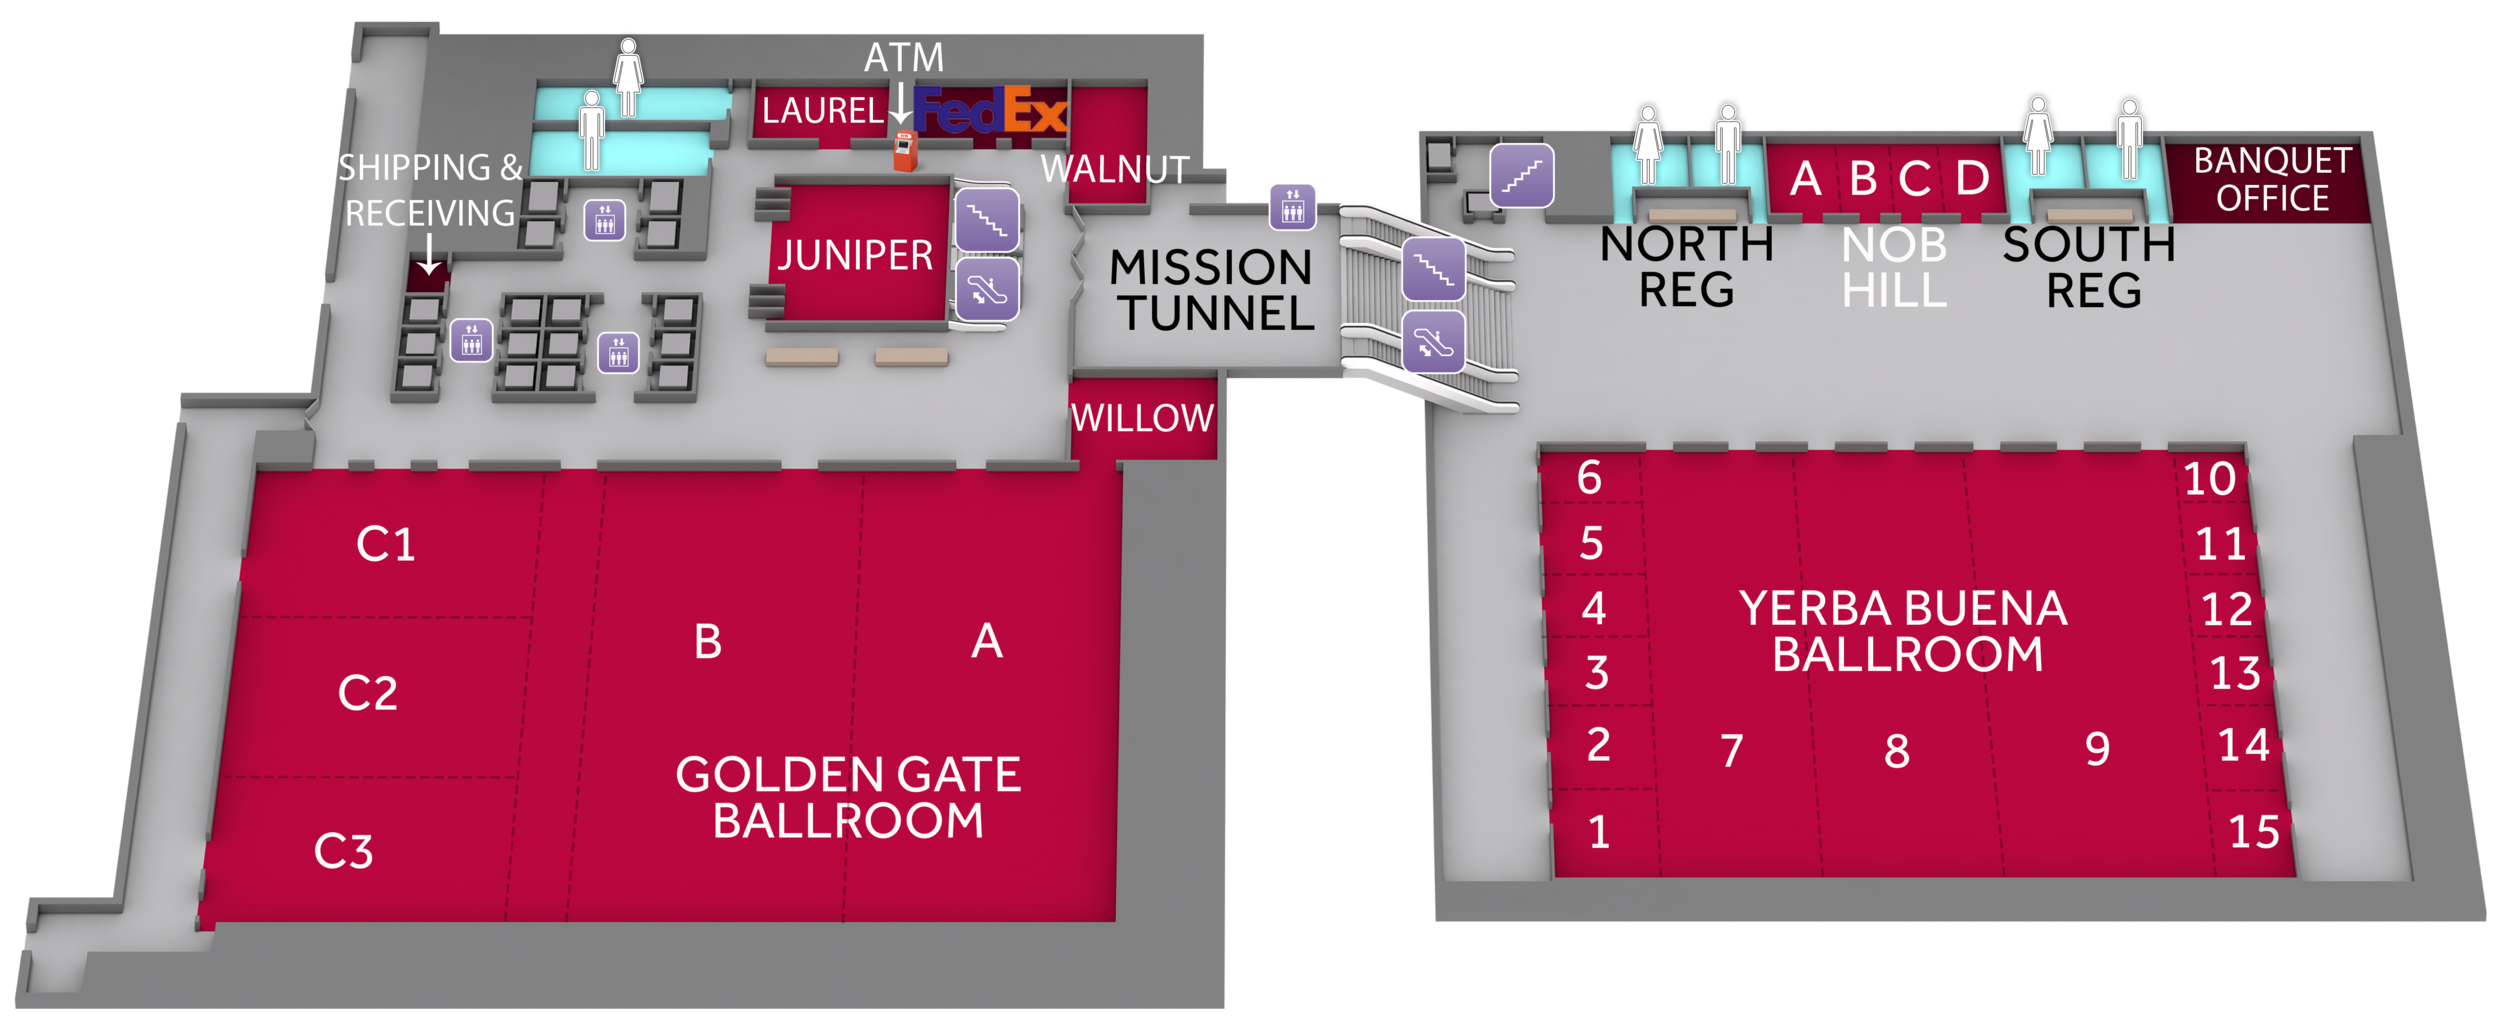 B2 Level Map.png